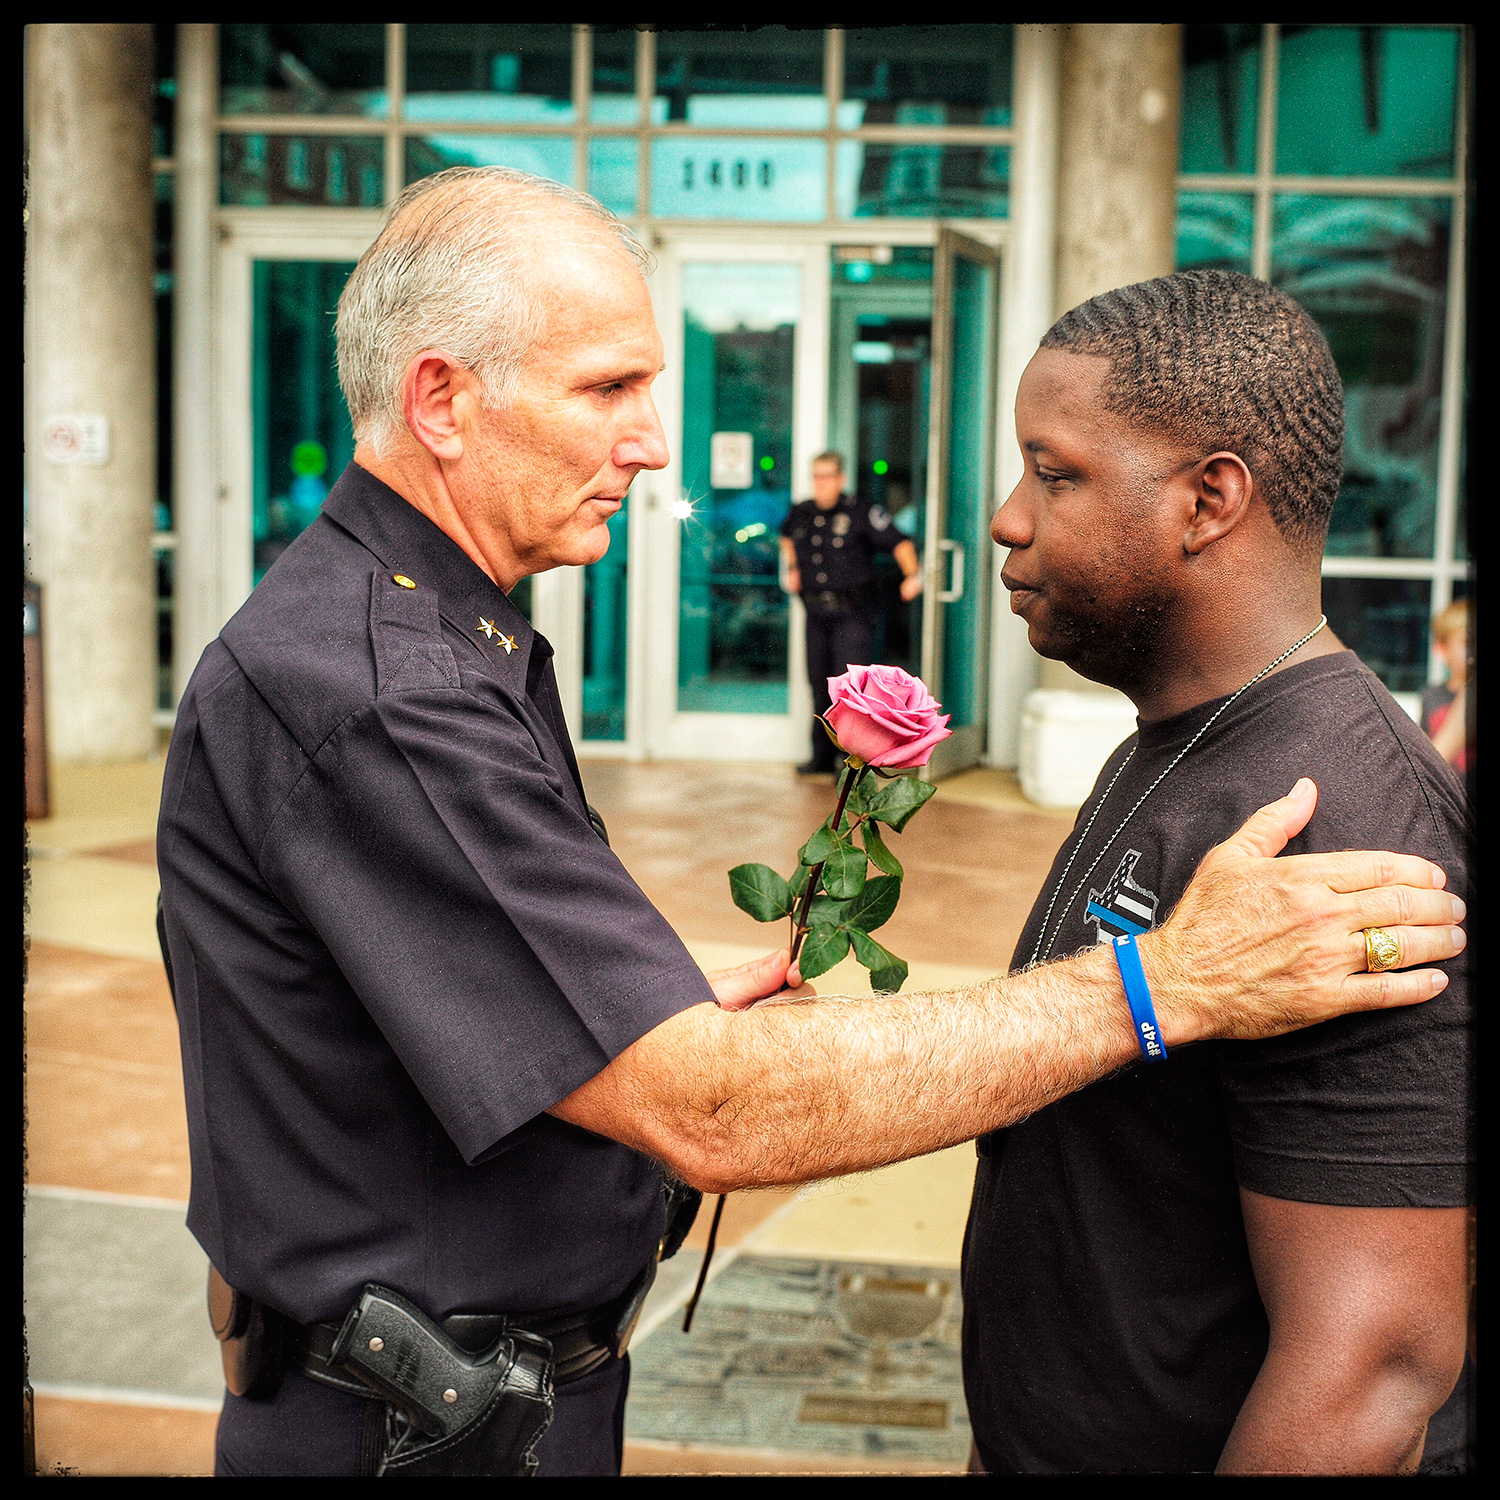 Assistant Chief of Police Gary Tittle comforts a young man in front of the police station where a memorial was erected for people to come and grieve. July 9, 2016, Dallas, Texas.From  How One Photo Captured Both Unity and Division in America